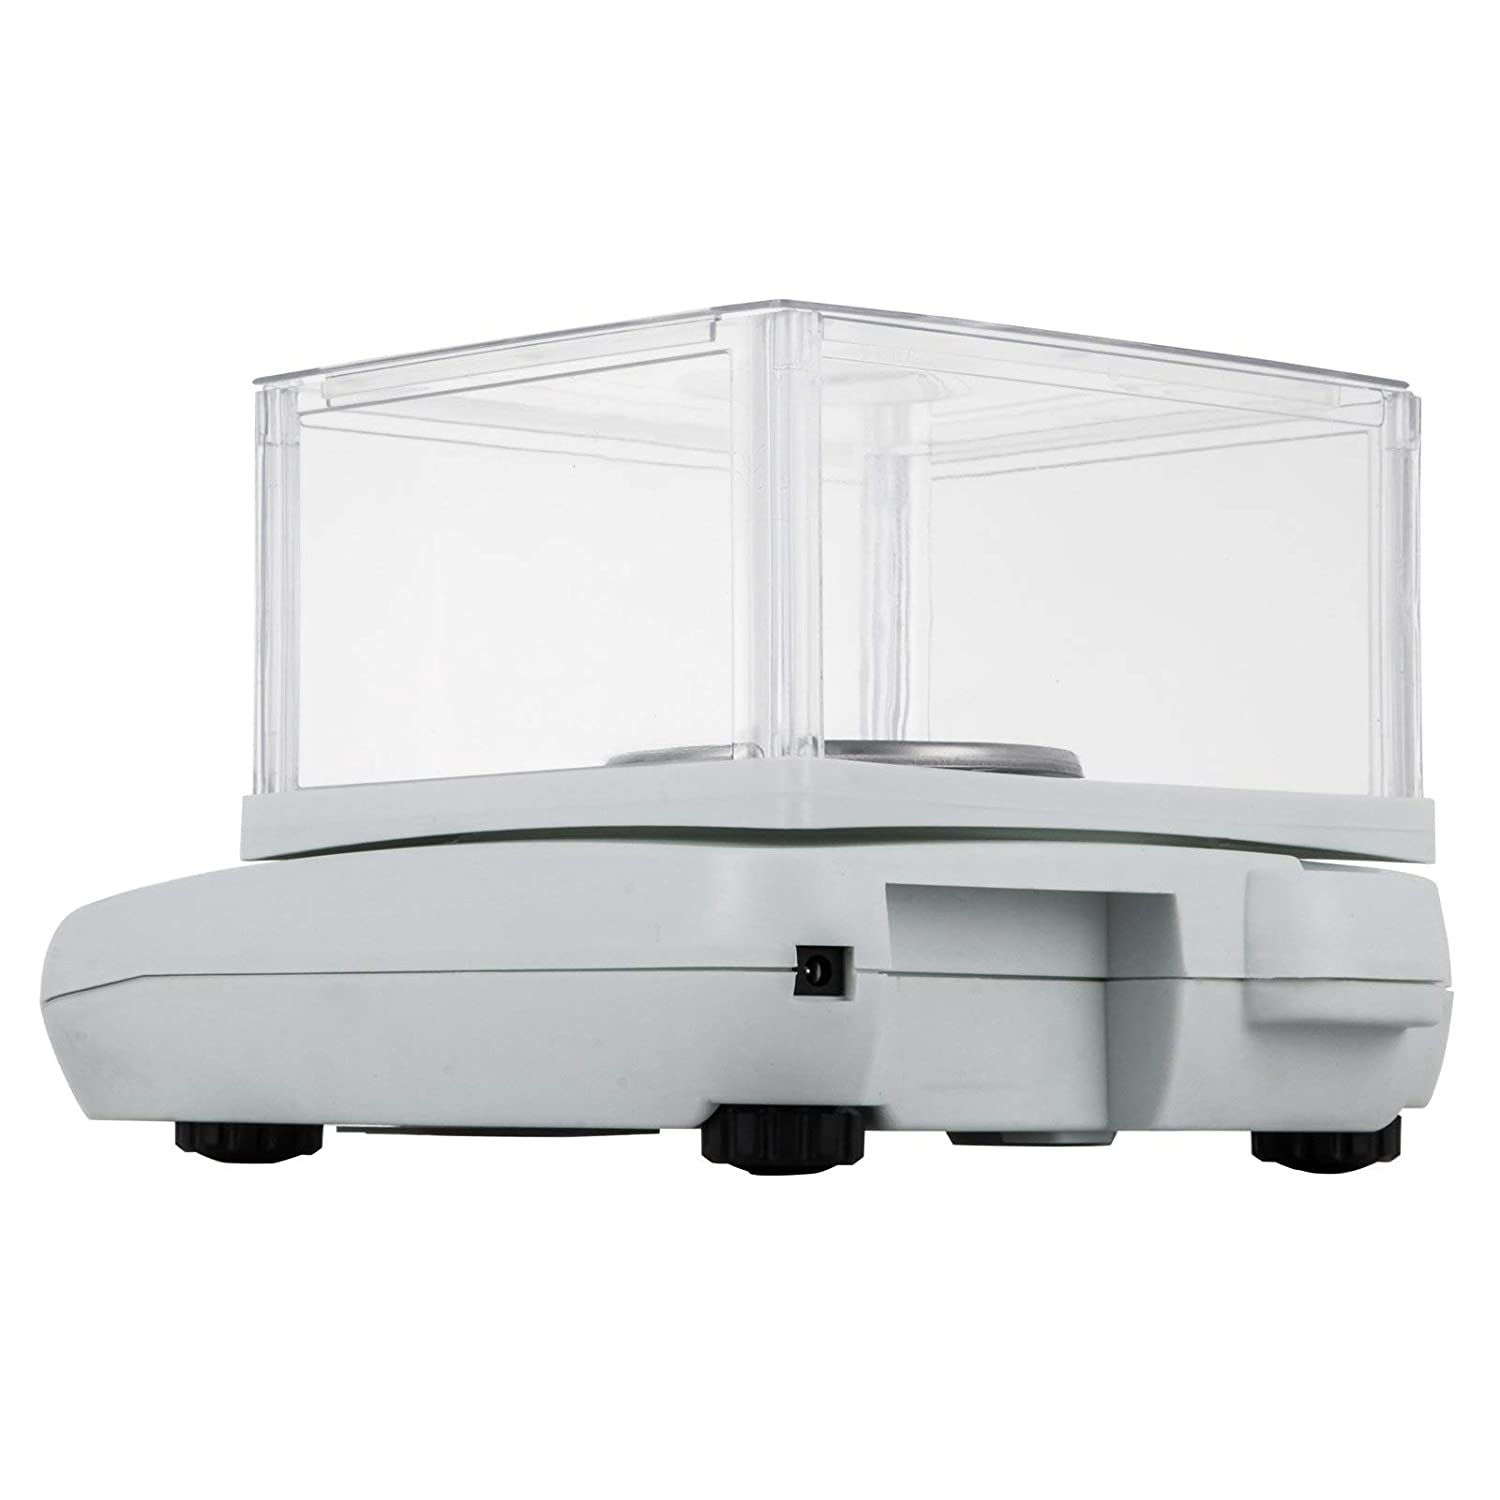 300g//0.001g Happybuy Analytical Balance 300g//0.001g High Precision Lab Digital Analytical Balance Jewelry Scale Jewelry Scales Kitchen Precision Weighing Electronic Scales with Wind Shield